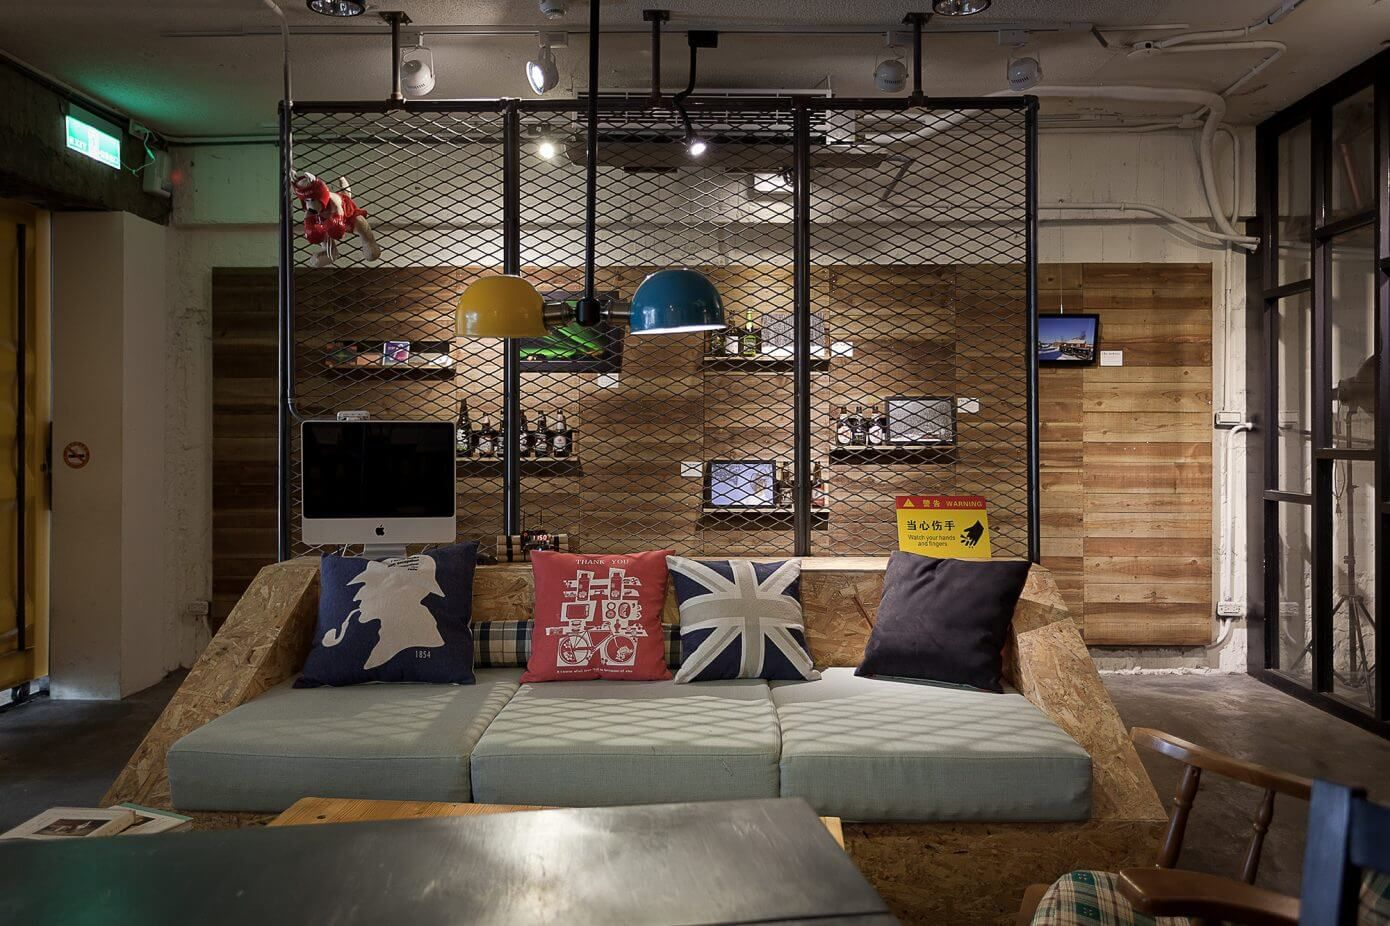 Laundry & Coffee Shop by Formo Design Studio | Photo © Mark Hsu